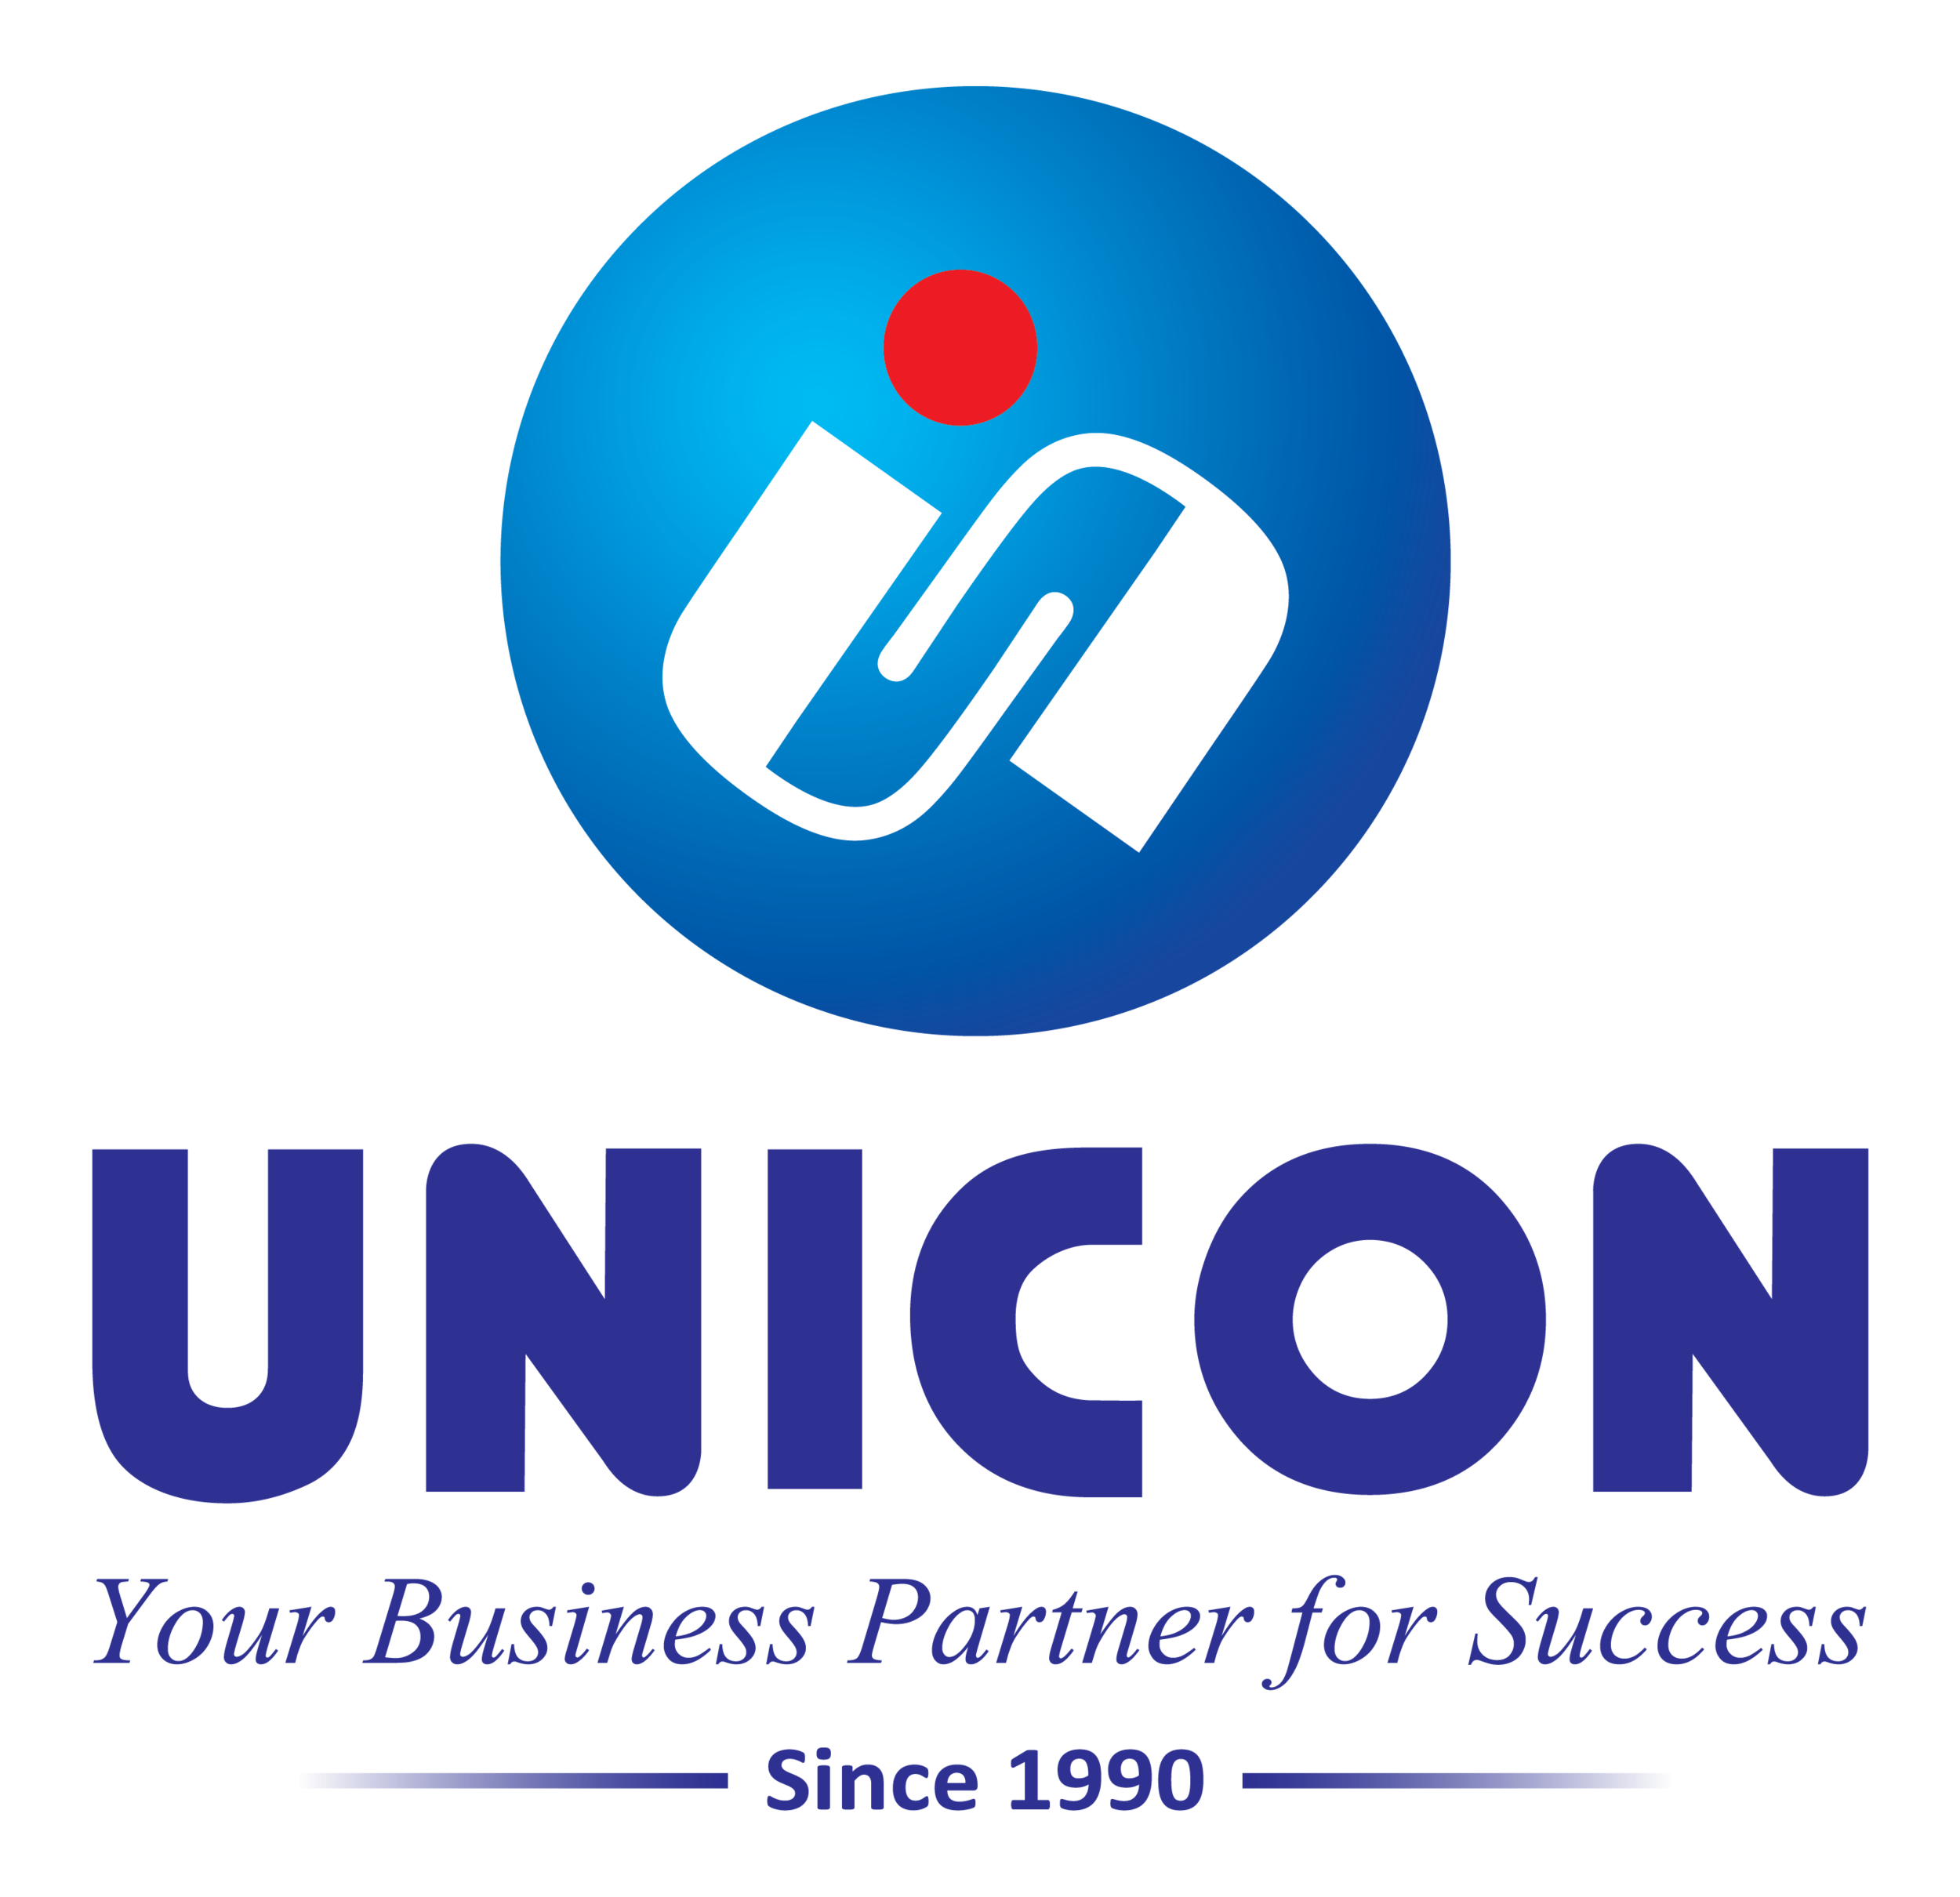 UNICON - To find out how UNICON can help you and your company, visit UNICON-intl.com.